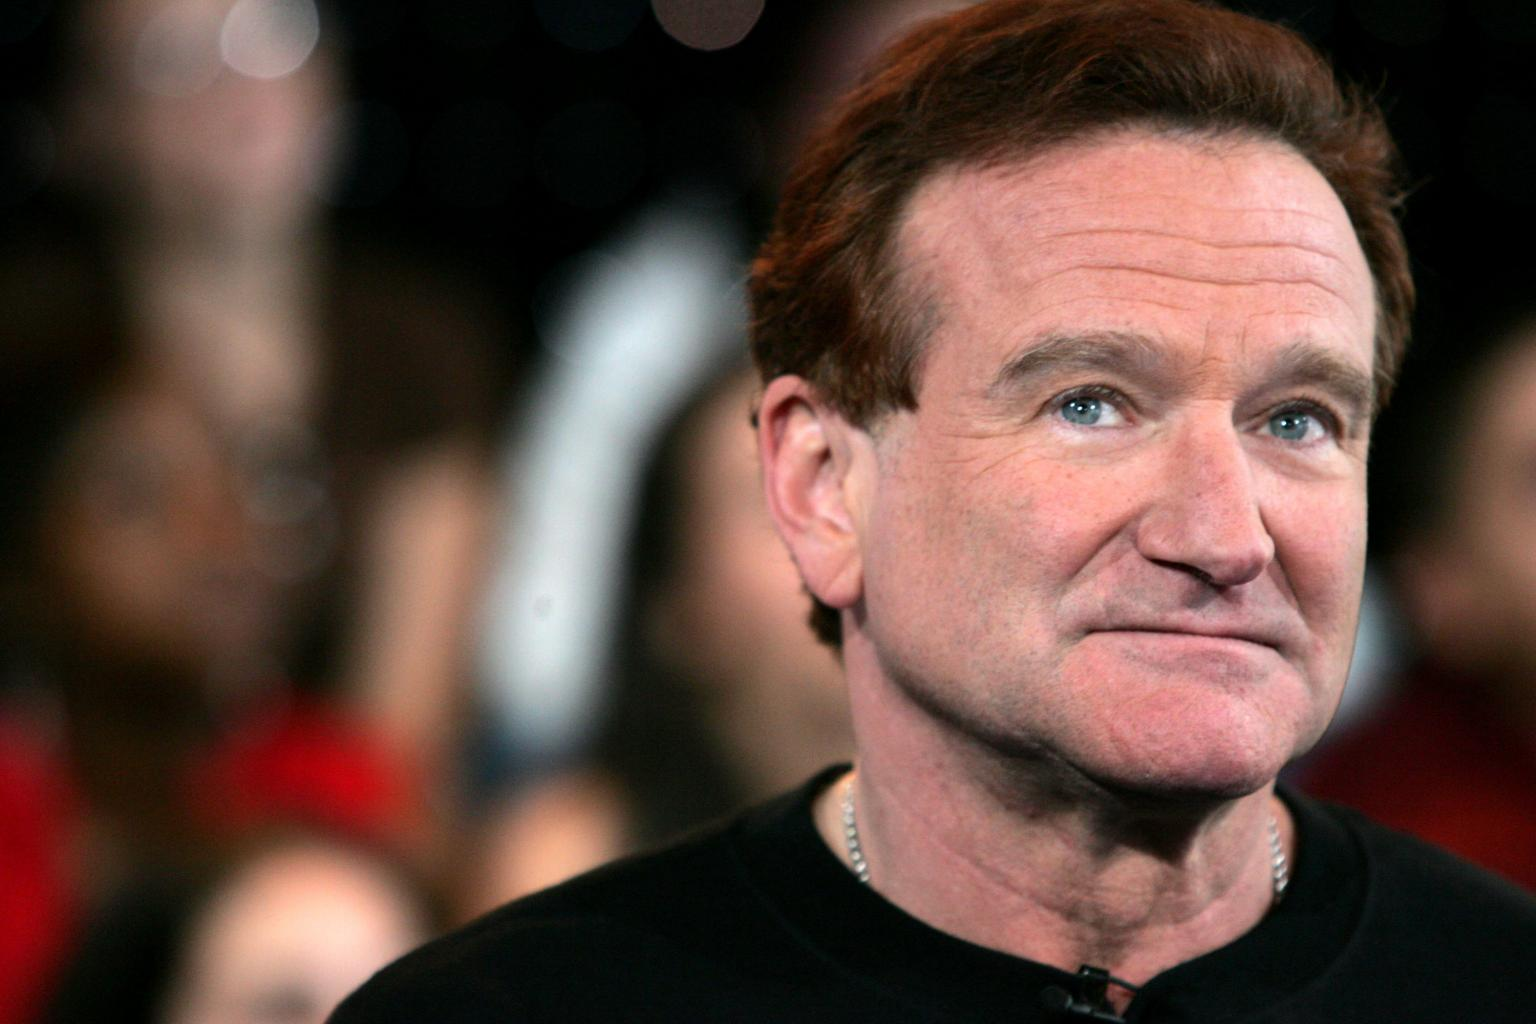 Matt Damon Remembers Robin Williams In Touching Tribute On Anniversary Of His Death